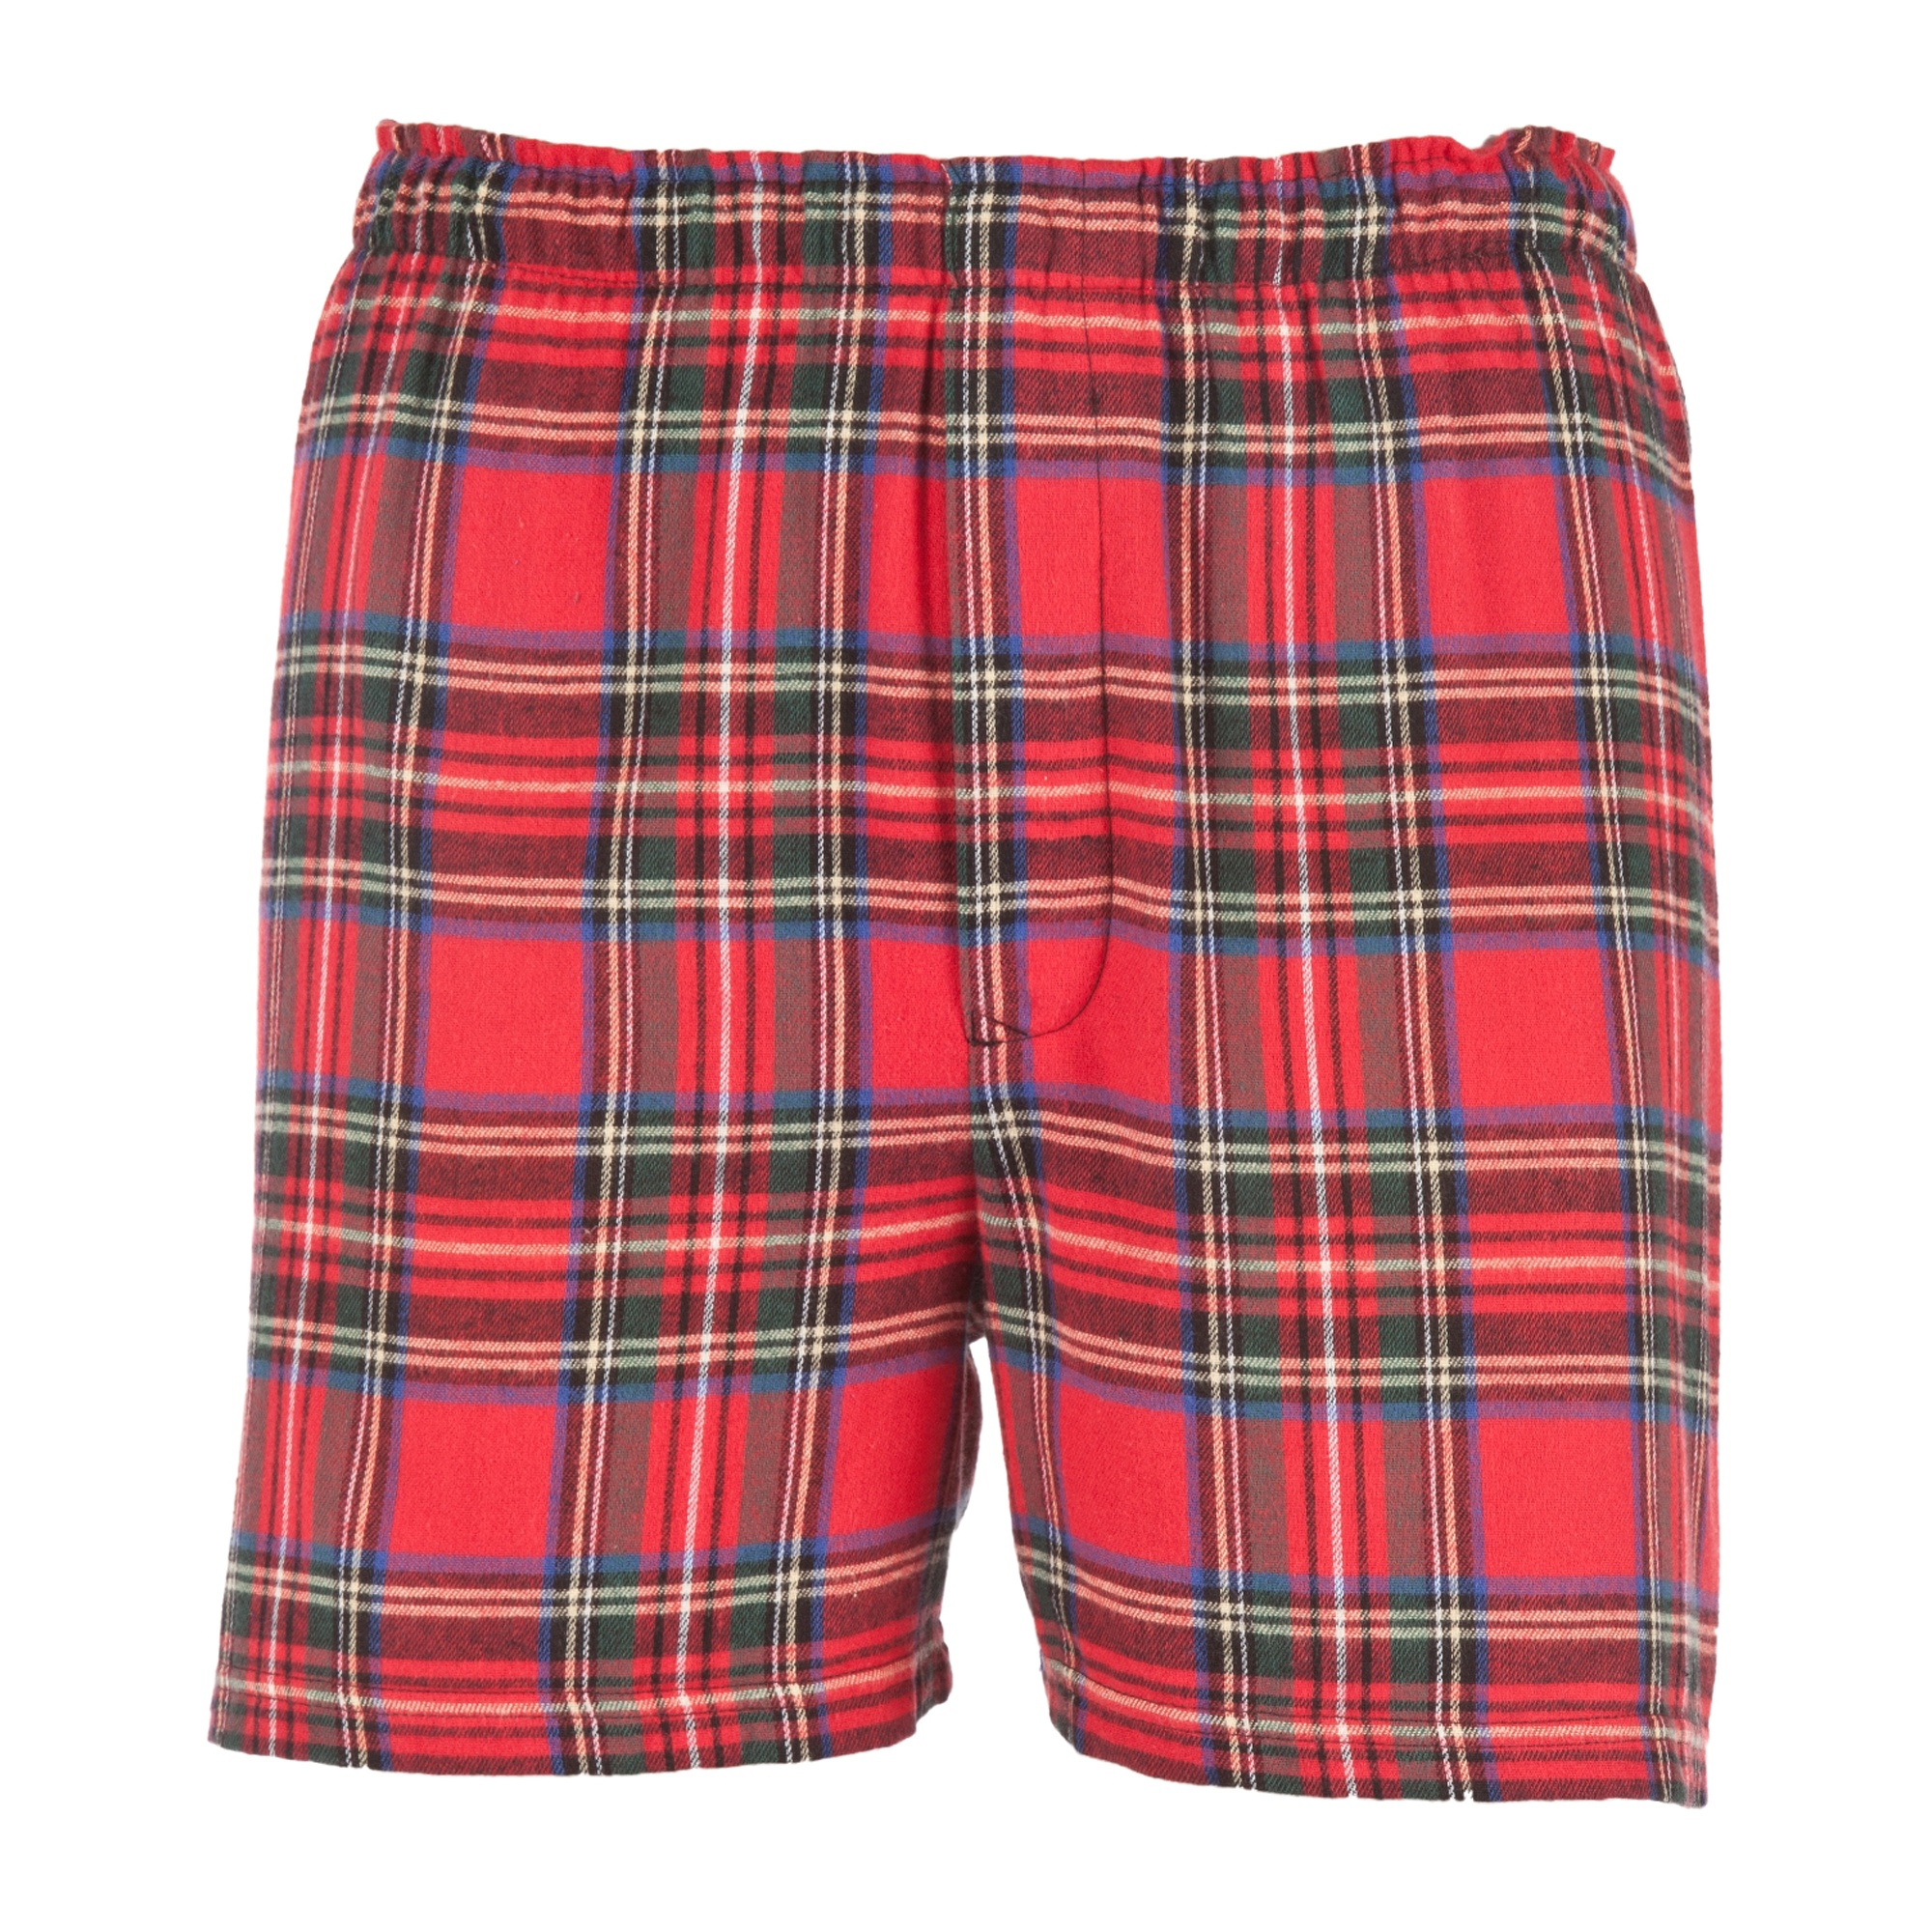 Find the best Scotch Plaid Flannel Boxers at teraisompcz8d.ga Our high quality Men's Sleepwear are thoughtfully designed and built to last season after season.